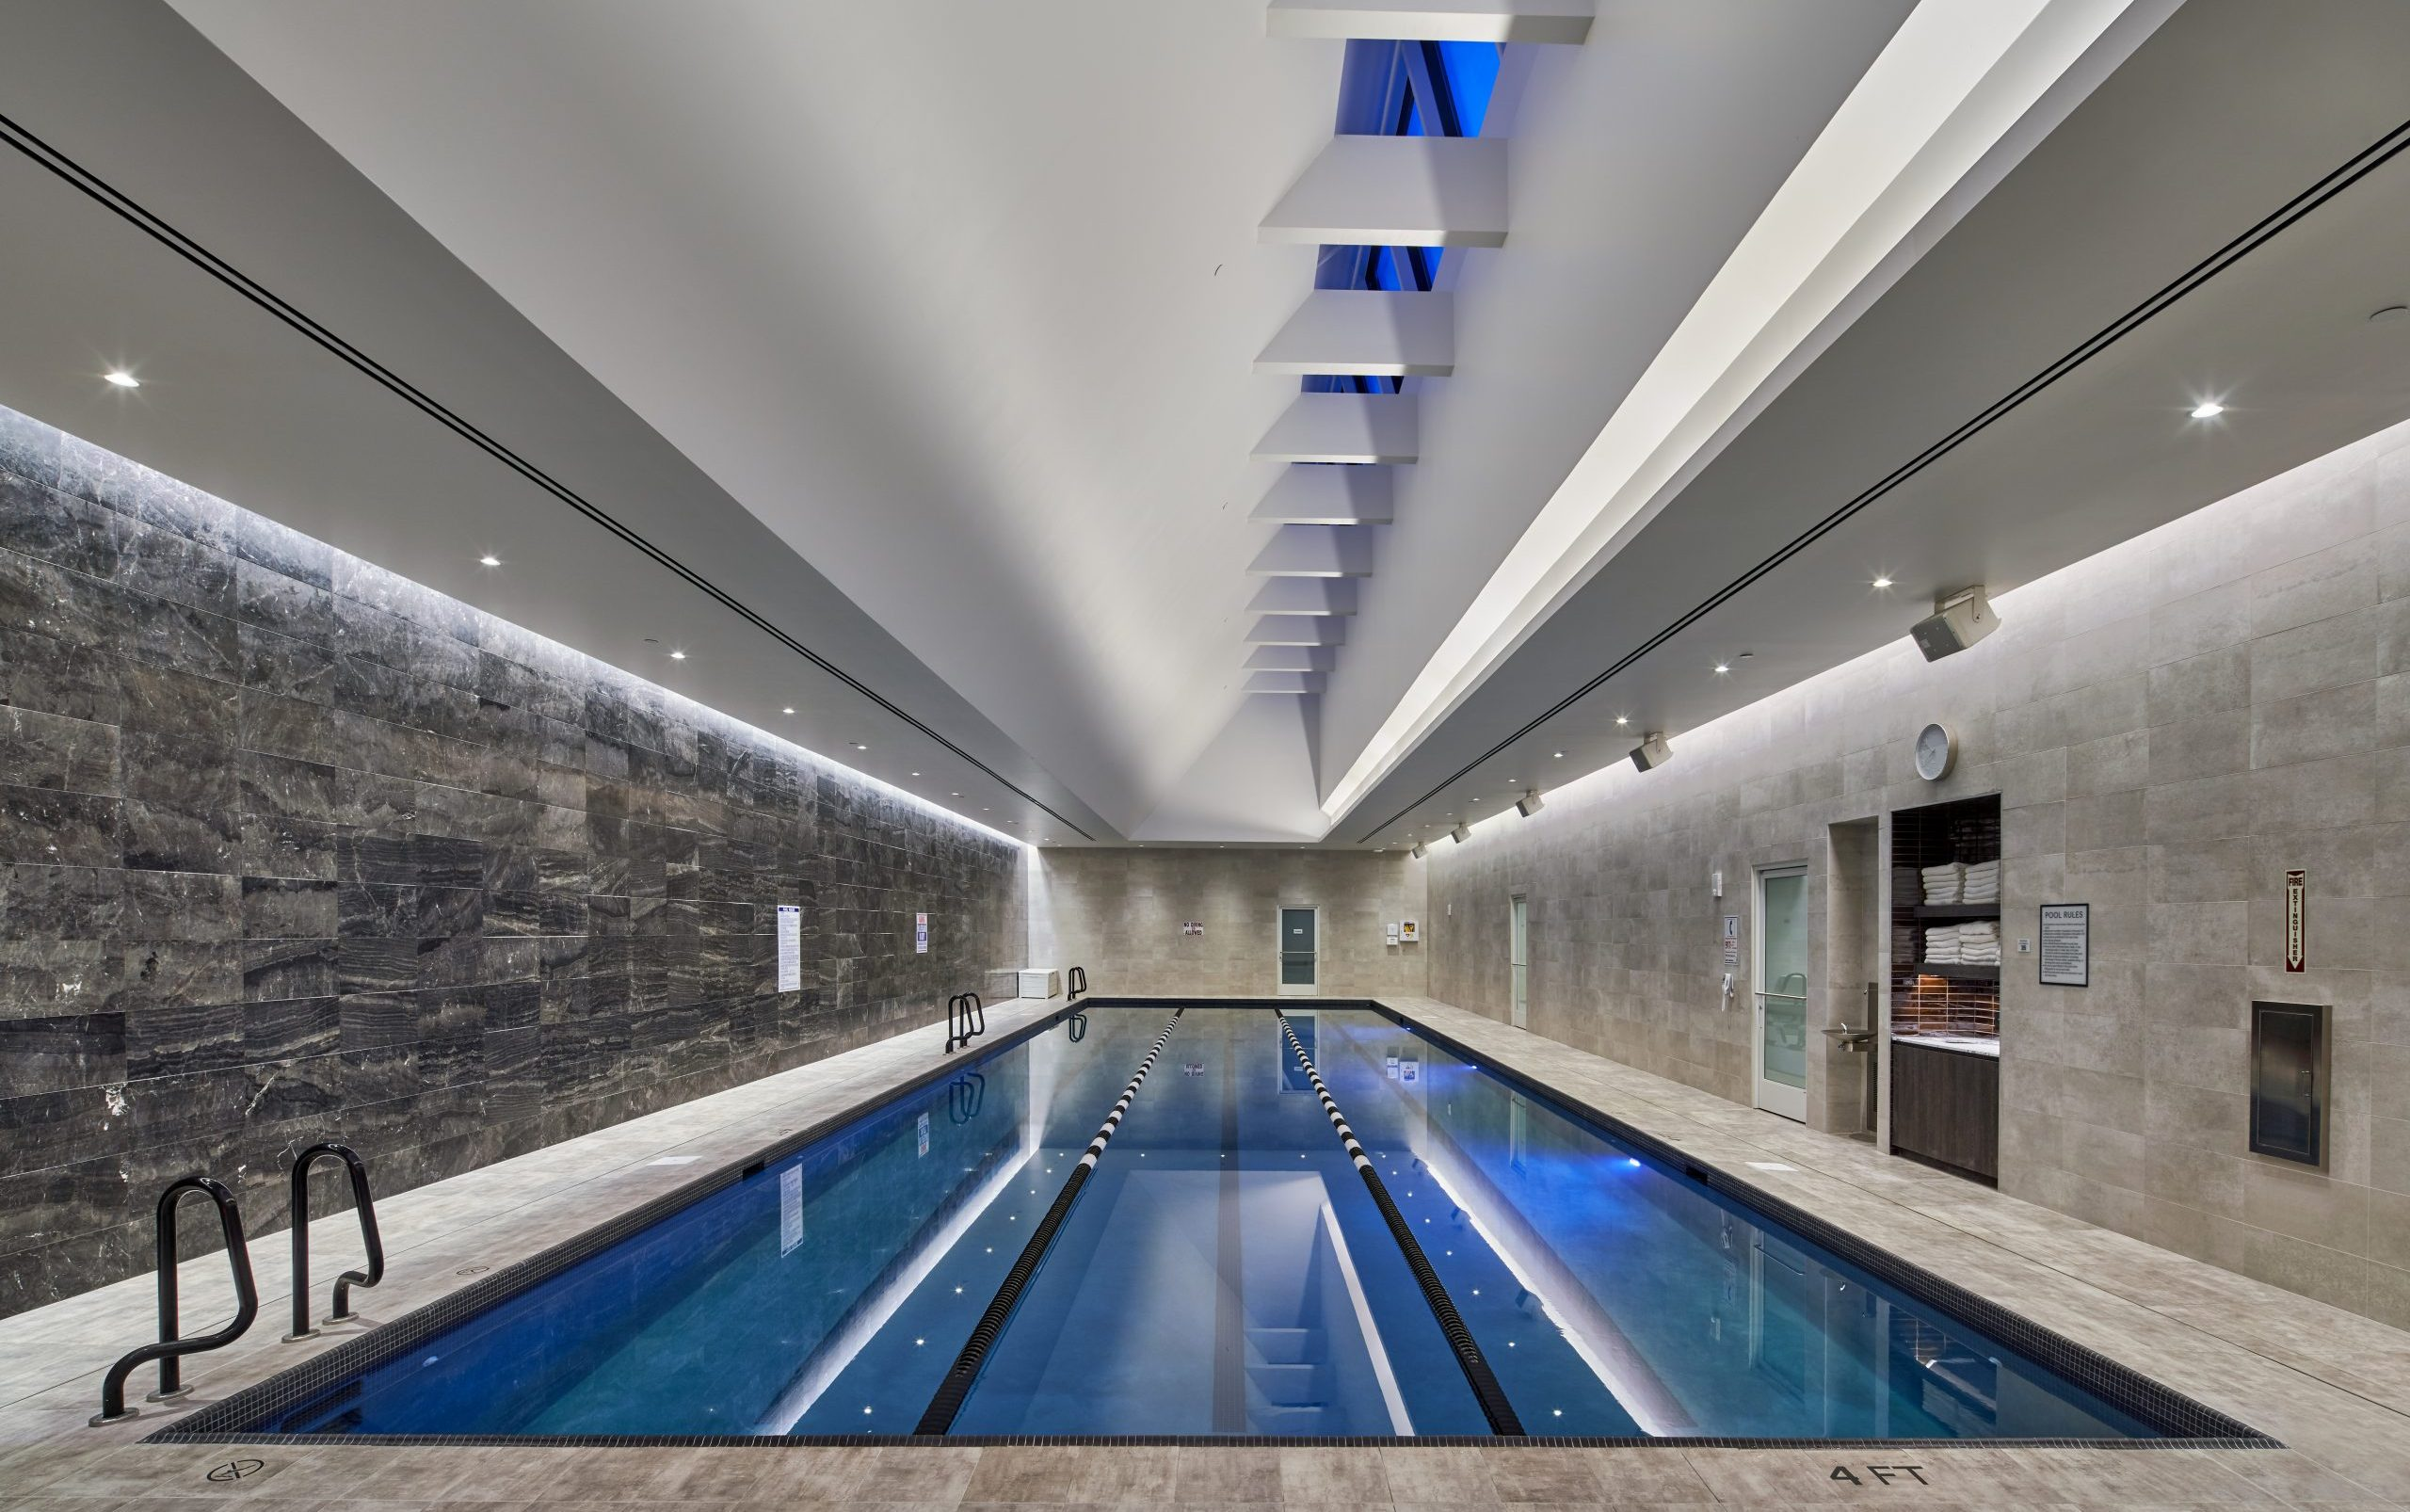 View of pool at Equinox Fitness Club Bloomfield Hills Project in Michigan Architecture and Interior Design